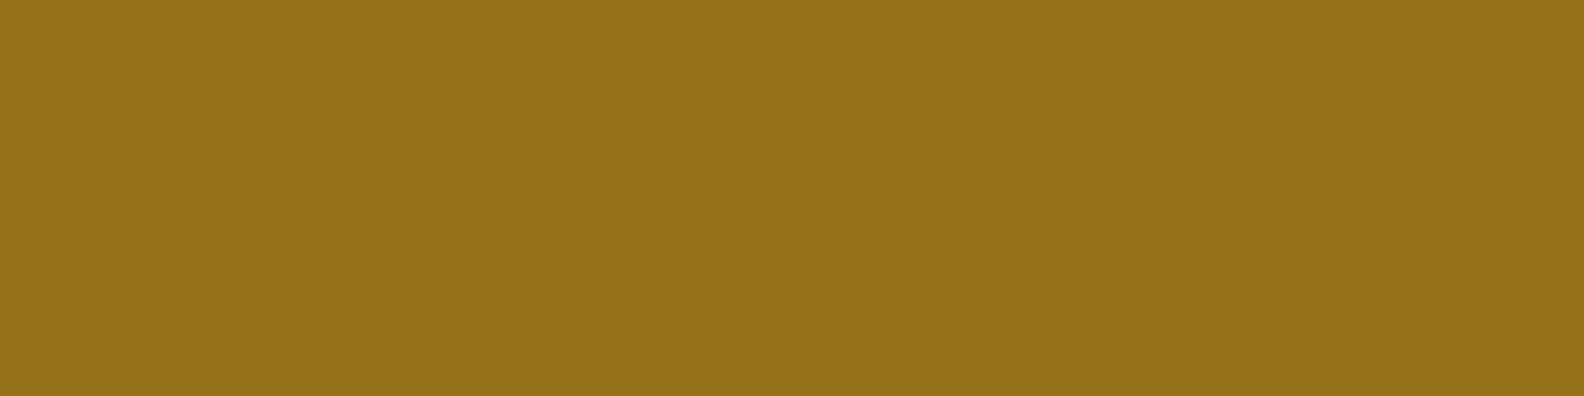 1584x396 Sand Dune Solid Color Background